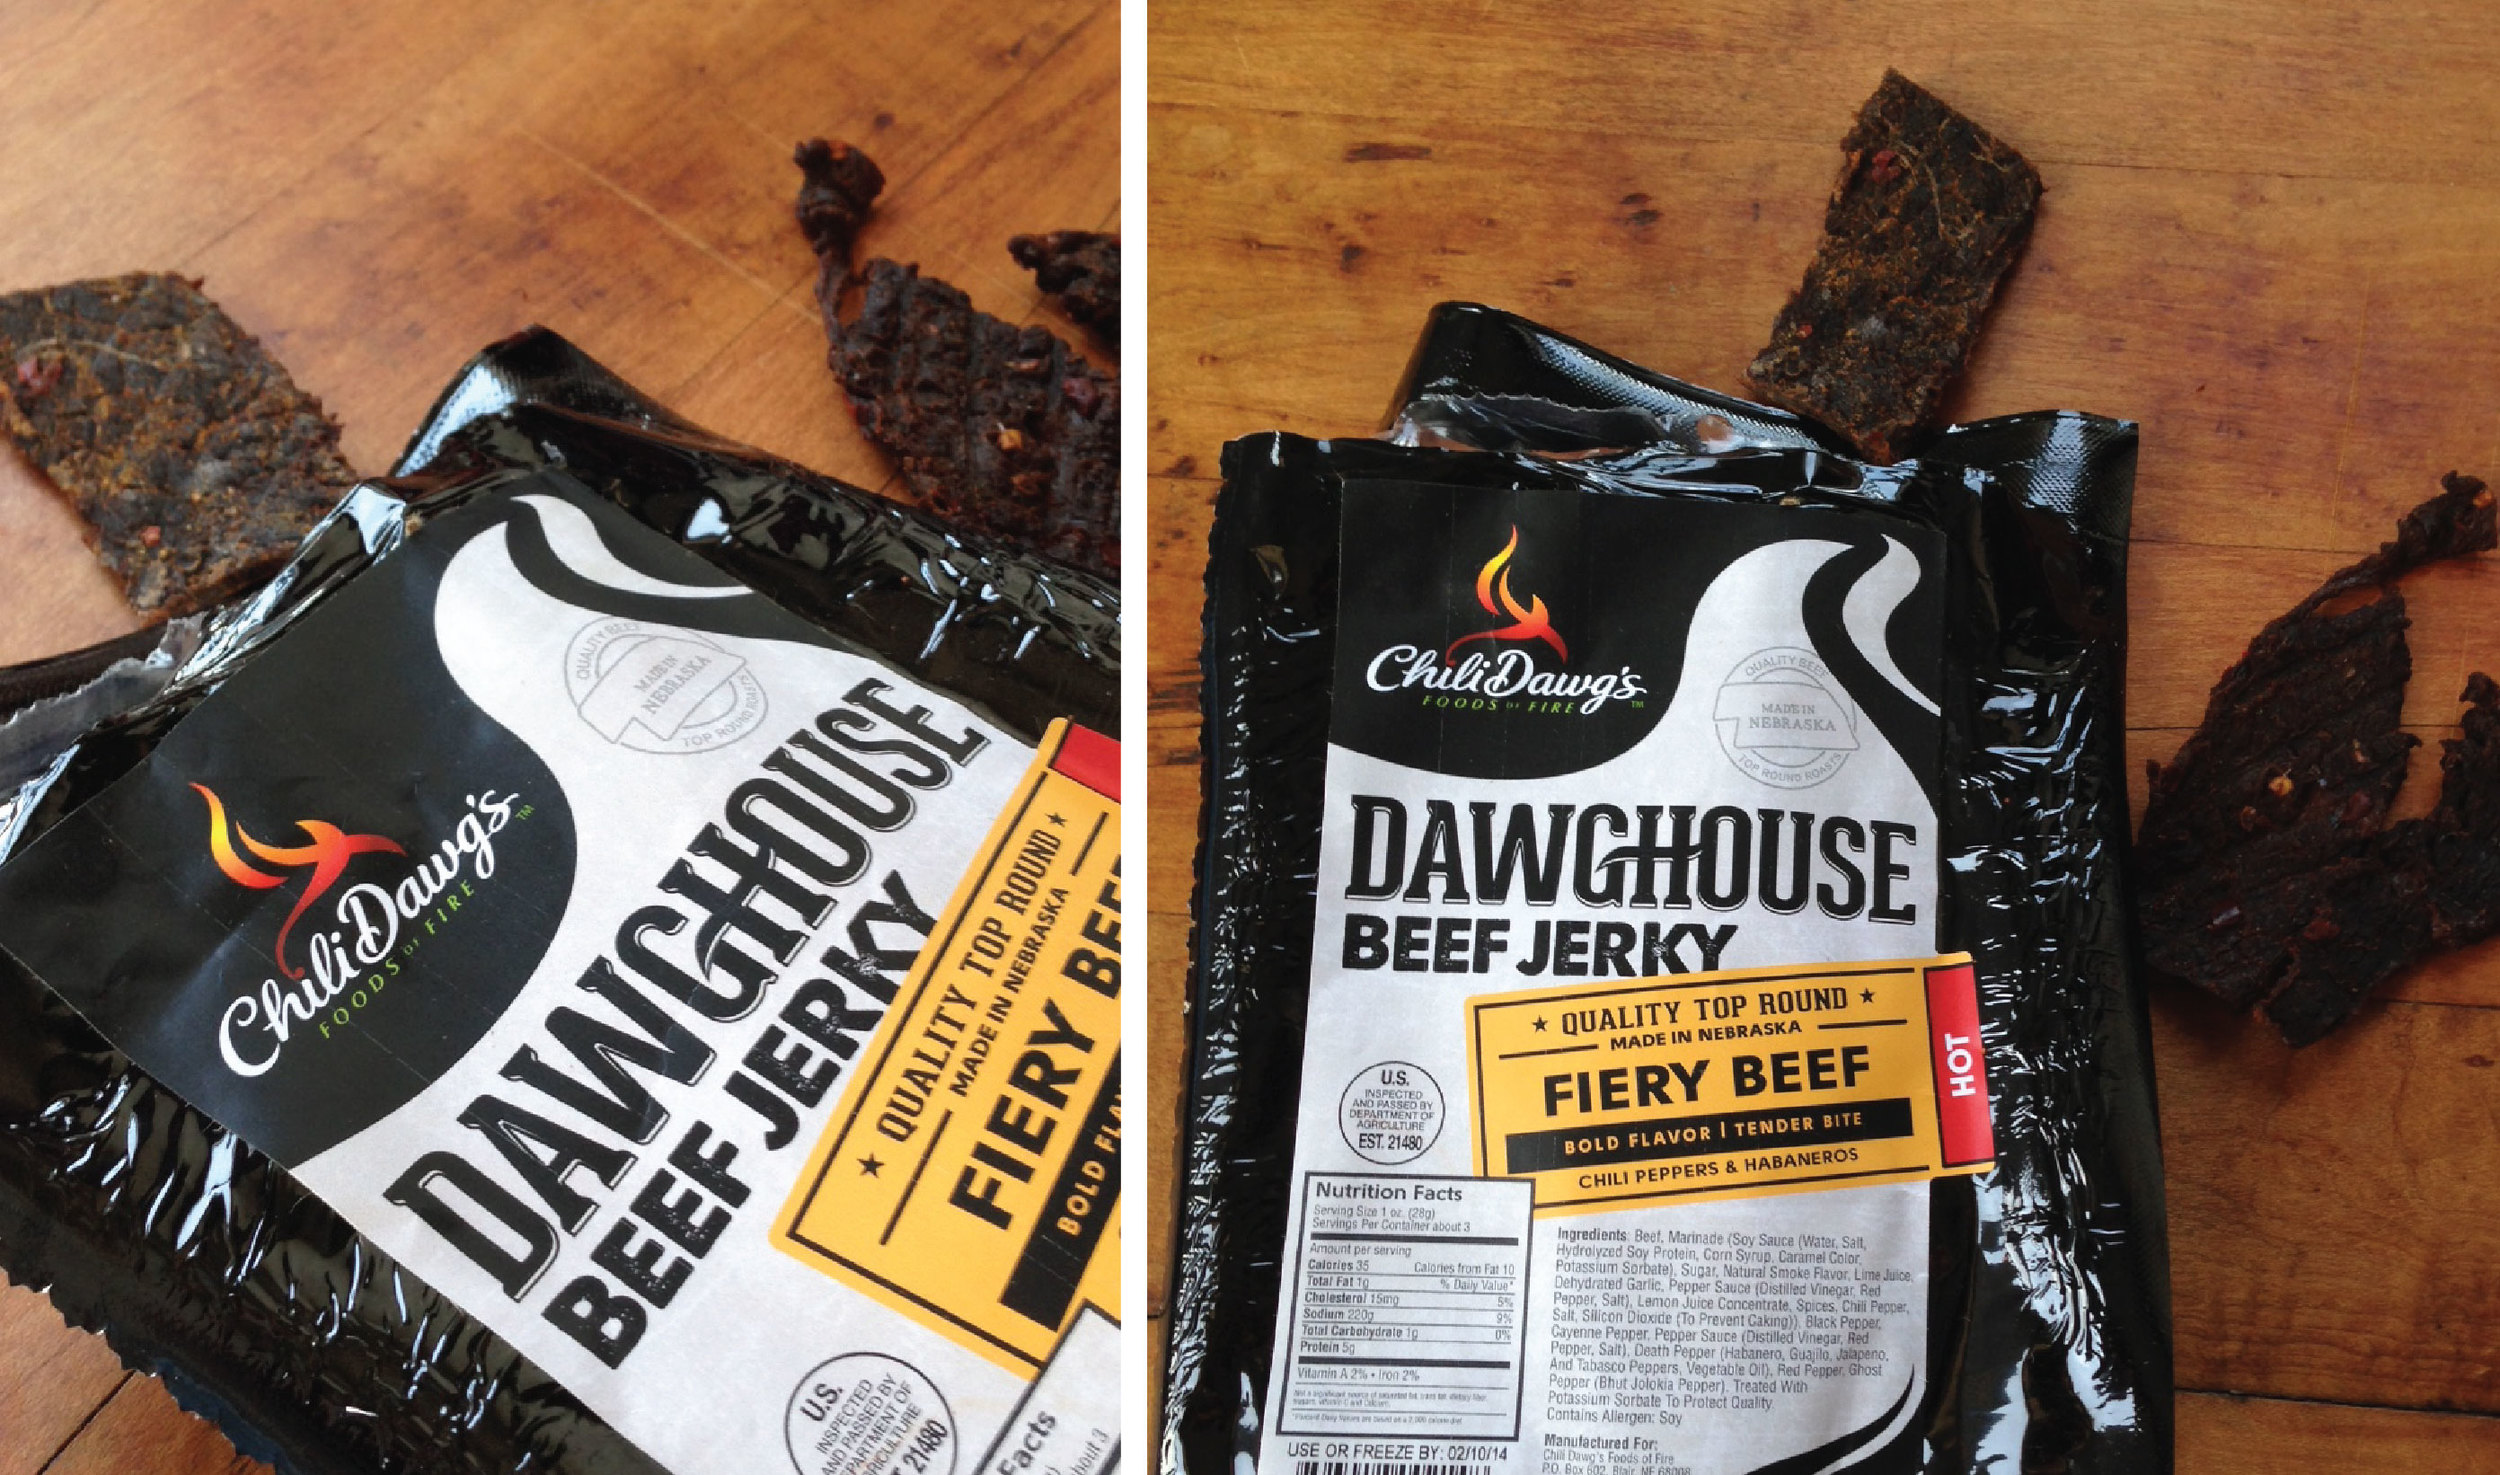 HS_CDBeefJerky-collections-01.jpg